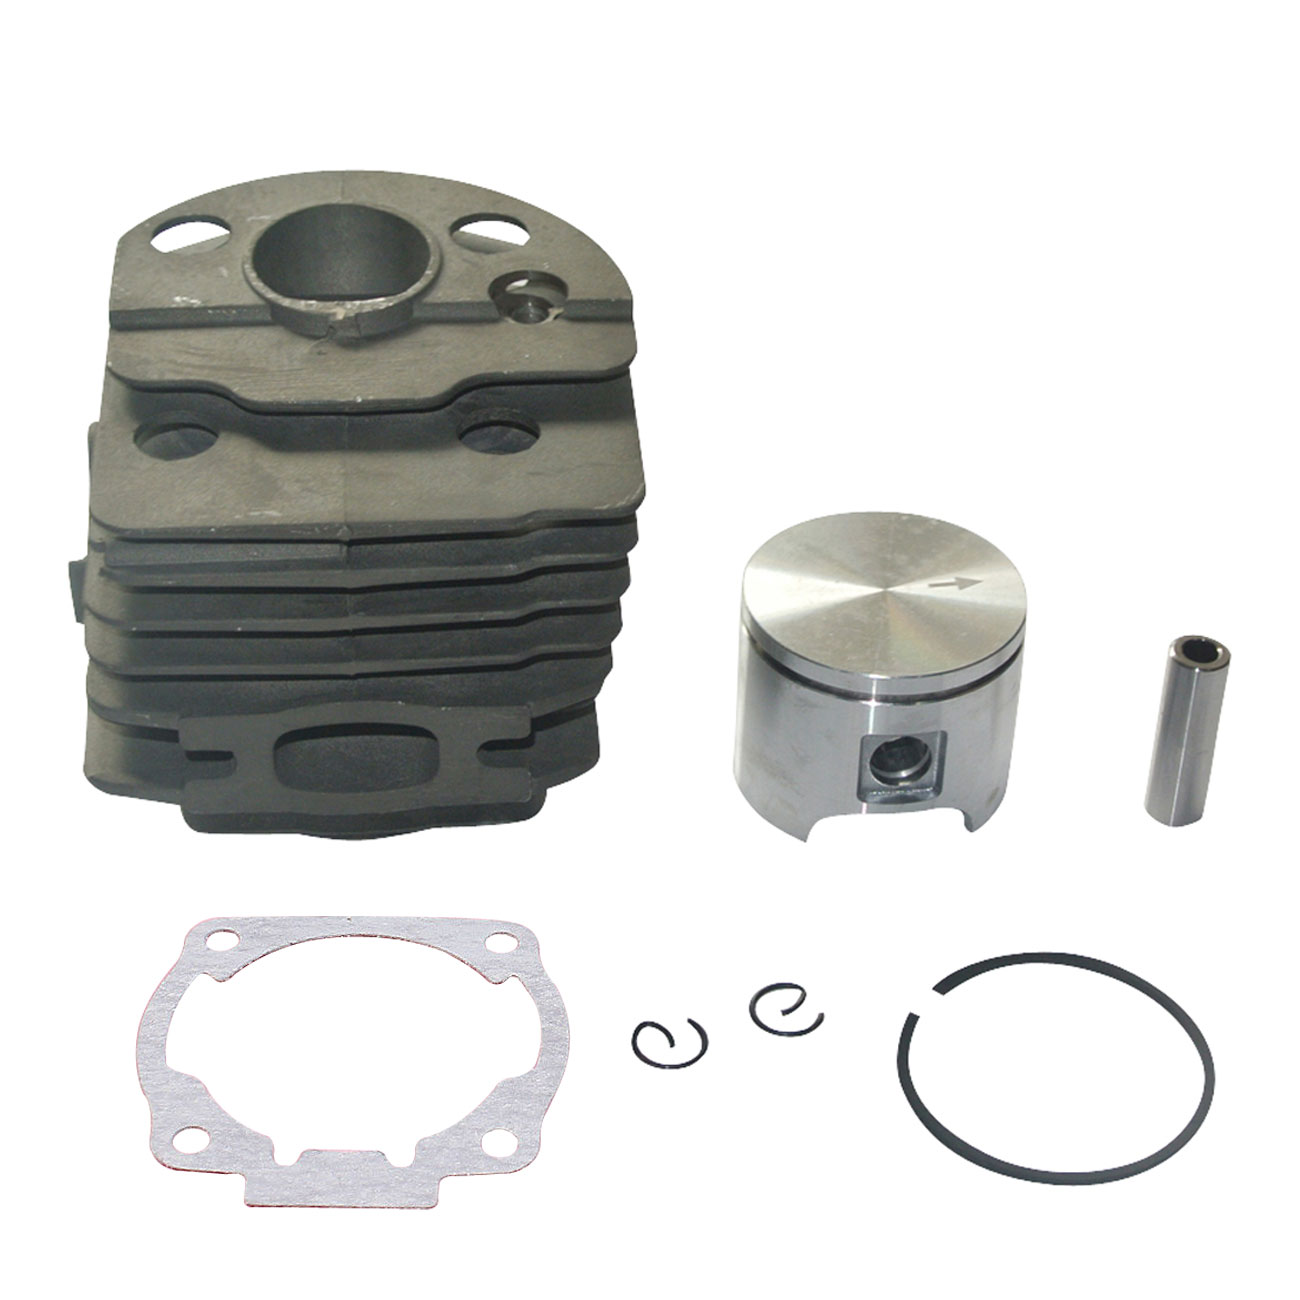 new replacement cylinder piston rings gasket engine kit for suzuki lt 80 lt80 1987 2006 rep 11210 40b01 Engine Motor Cylinder Kit Piston Kit w/ Rings 46MM For Husqvarna 51 55 Chiansaw